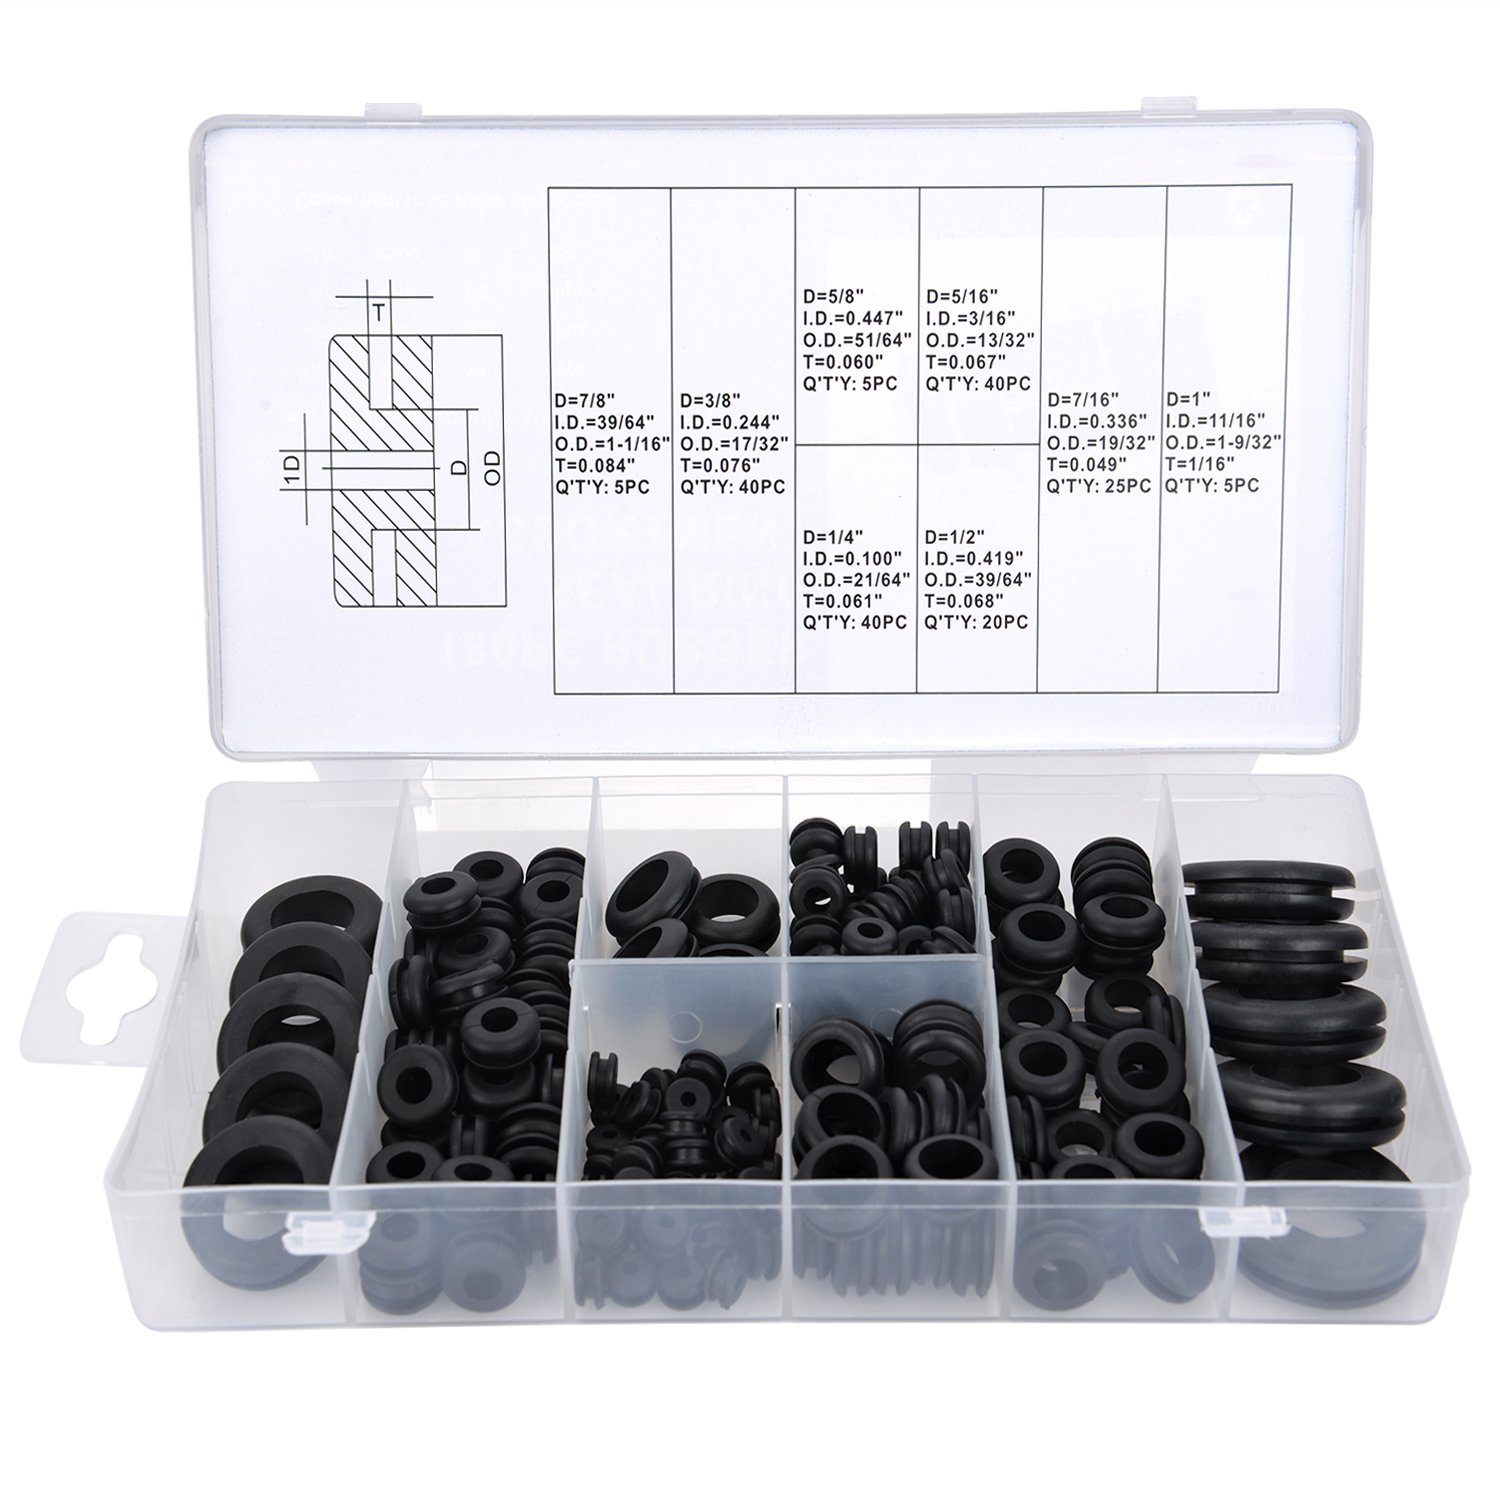 Rubber Grommet Assortment Kit Electrical Conductor Gasket Ring Set for Wire, Plug and Cable, 180 Pieces eBoot